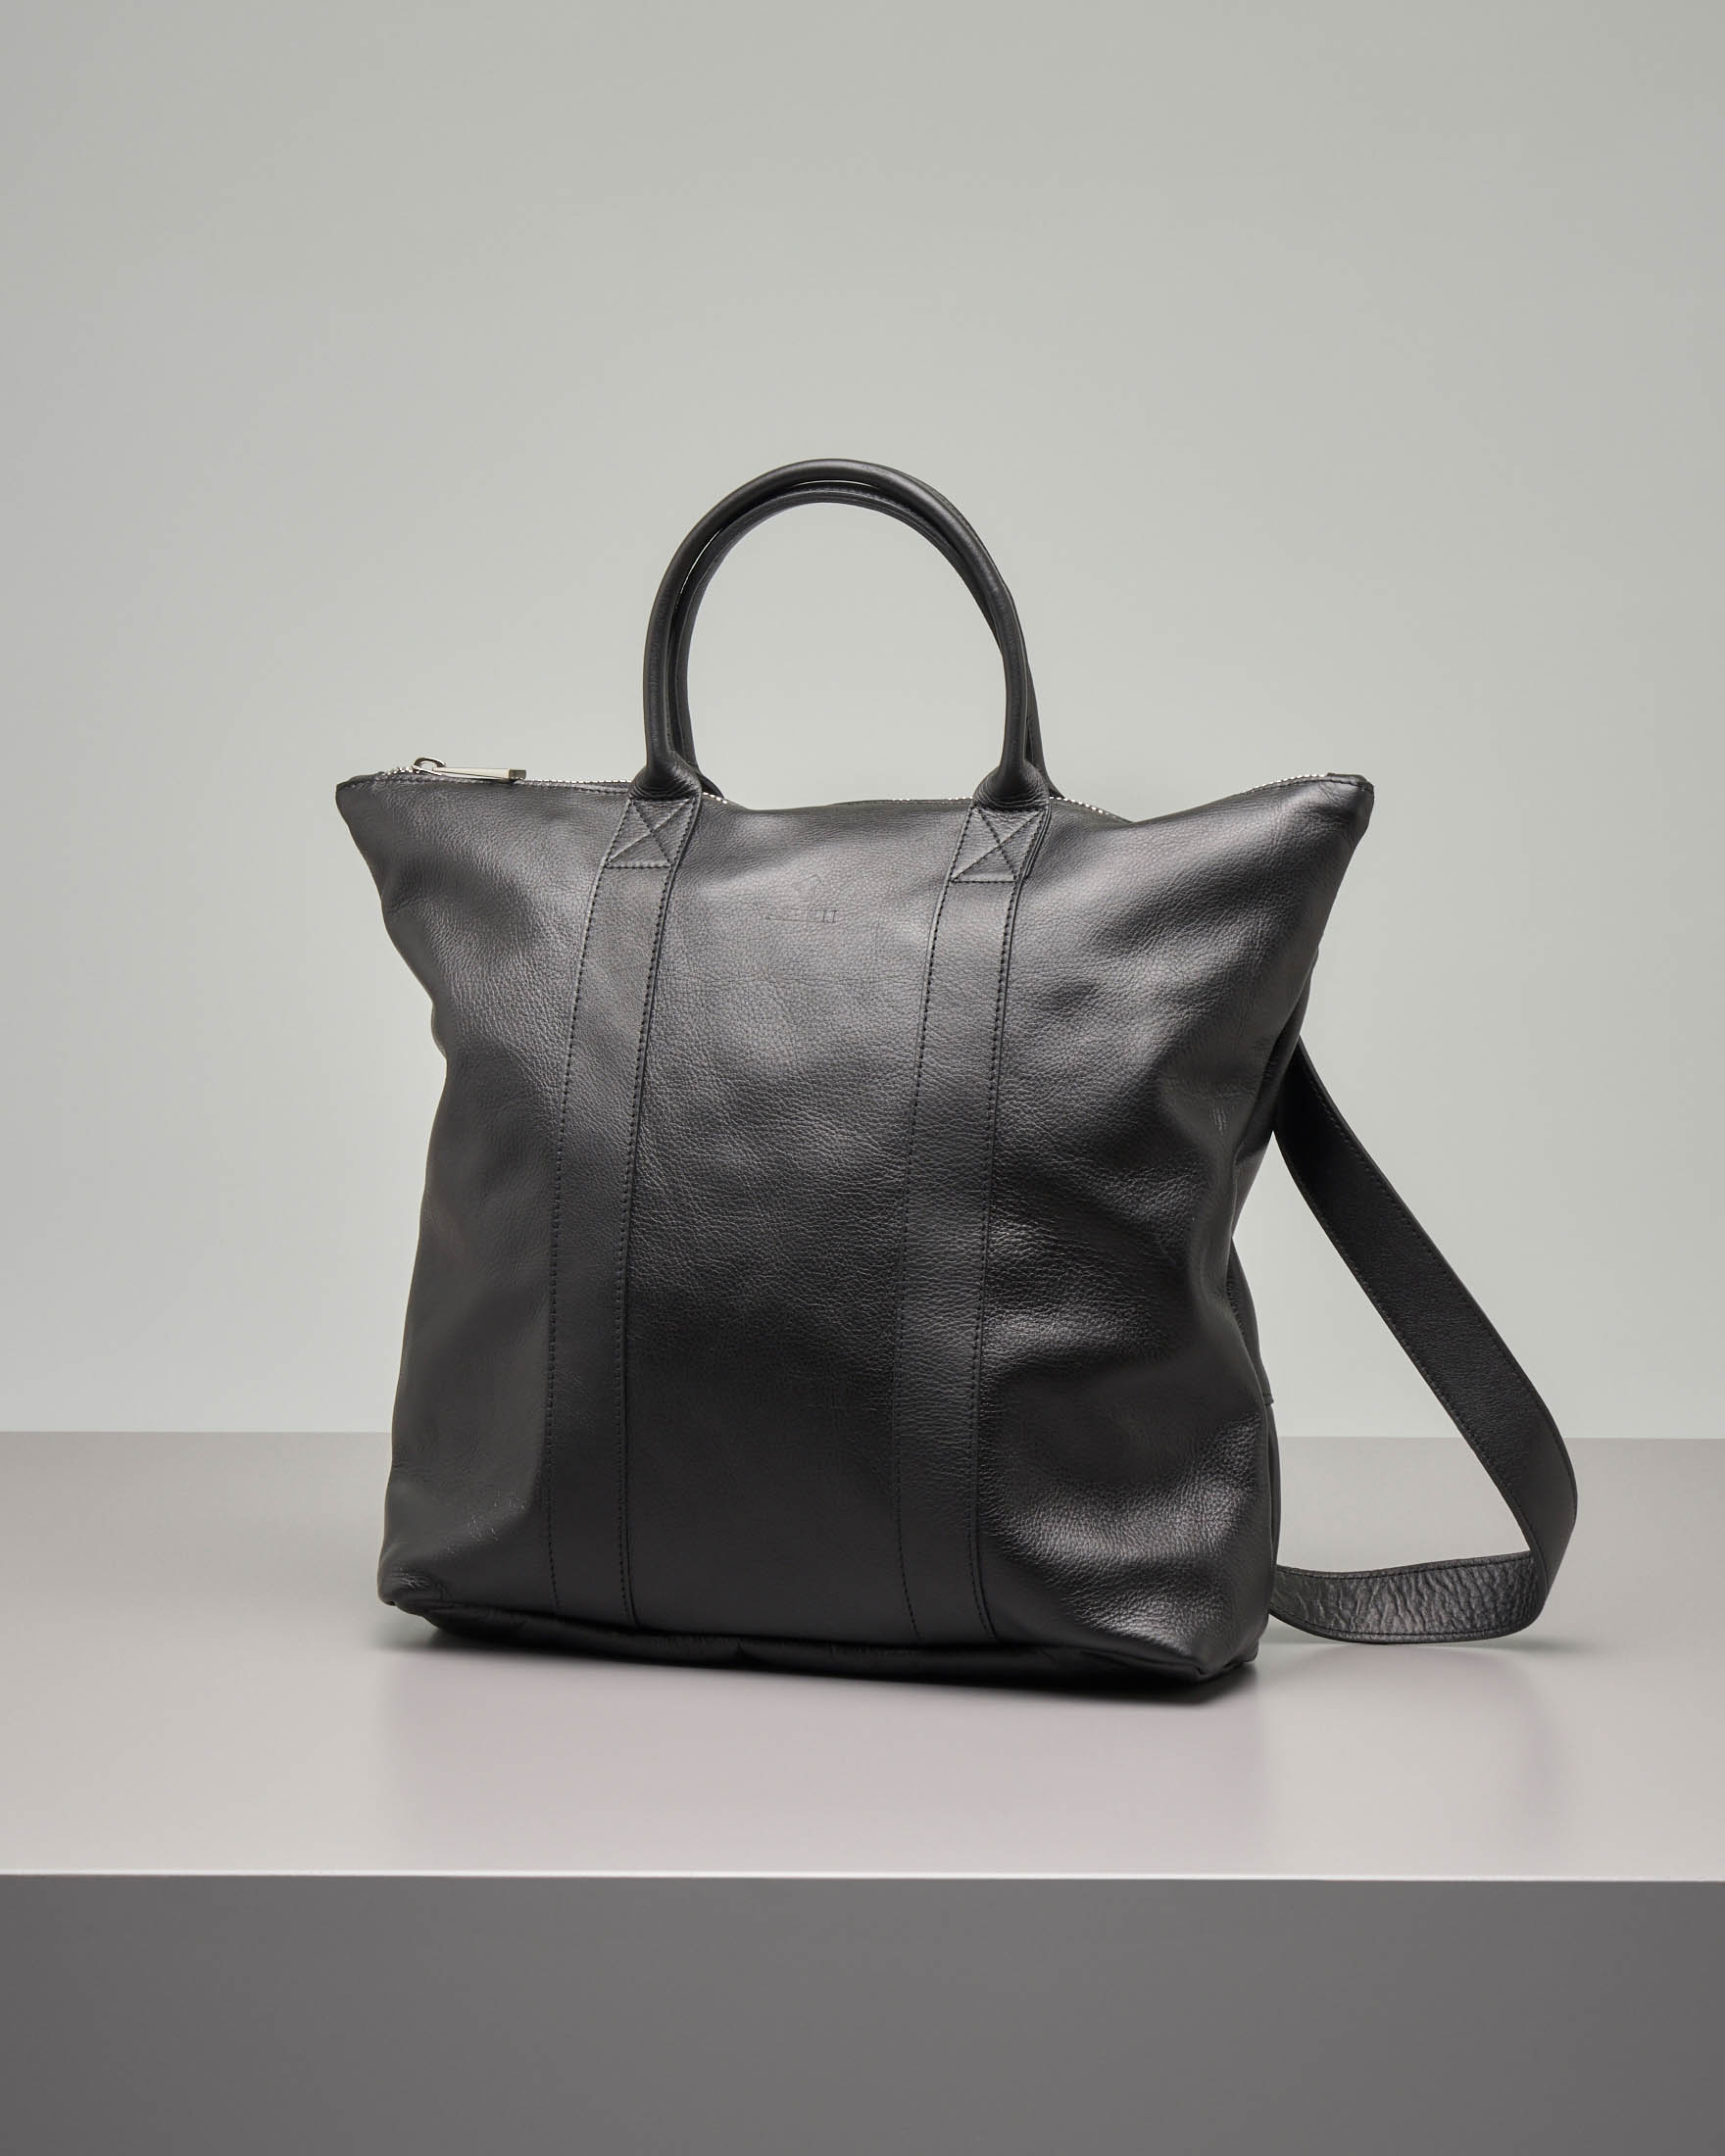 e05396c28d Borsa zaino in pelle nera | Pellizzari E-commerce